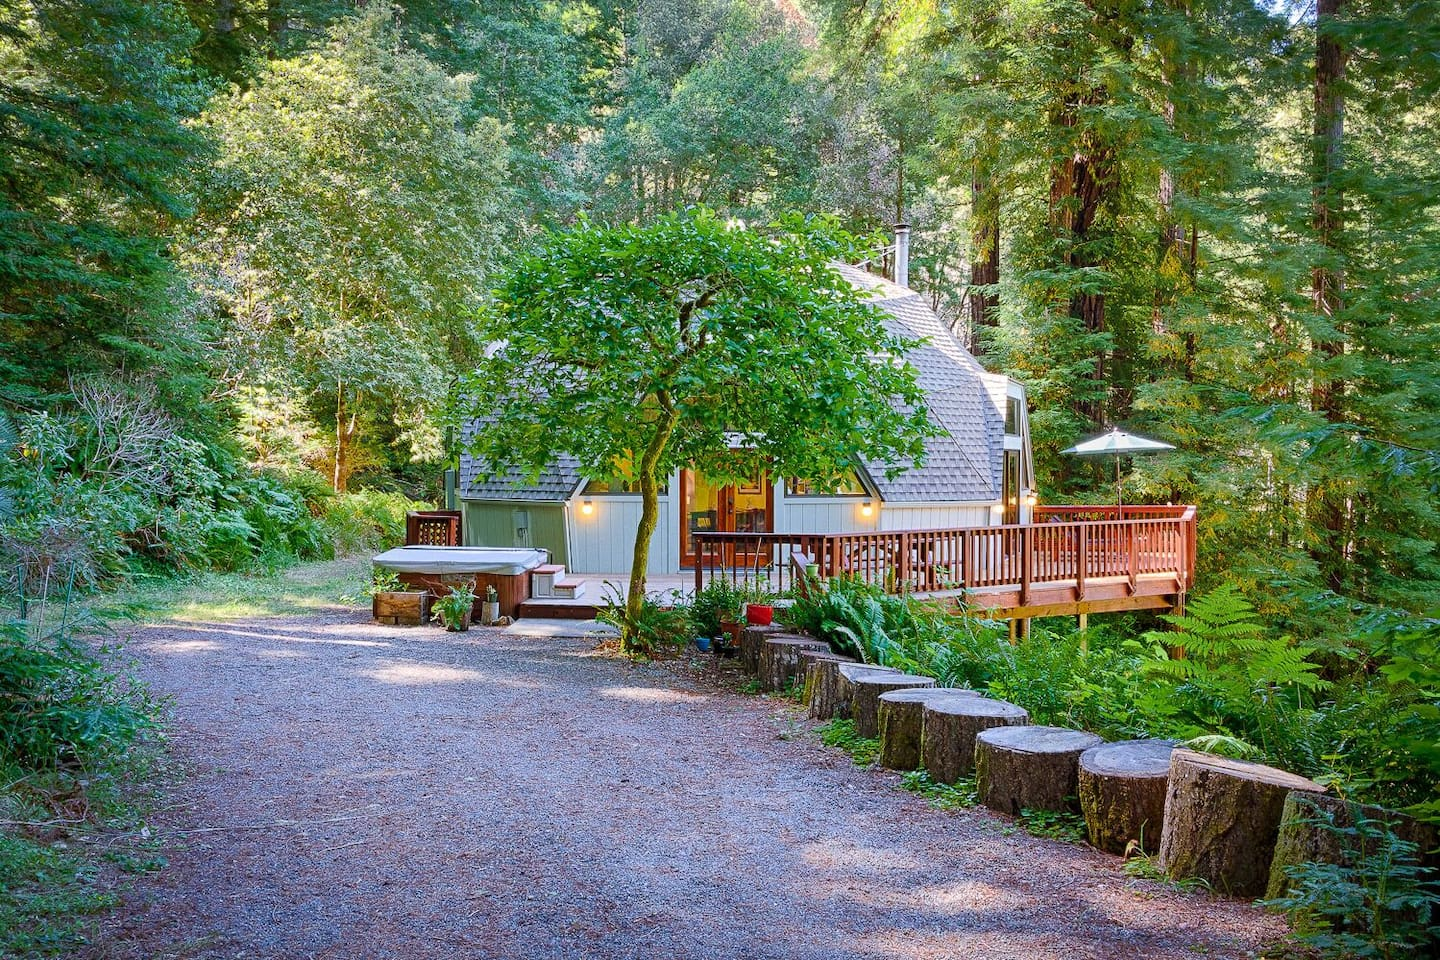 Welcome to the Redwood Dome -- a geodesic dome retreat in the heart of Russian River and the redwoods